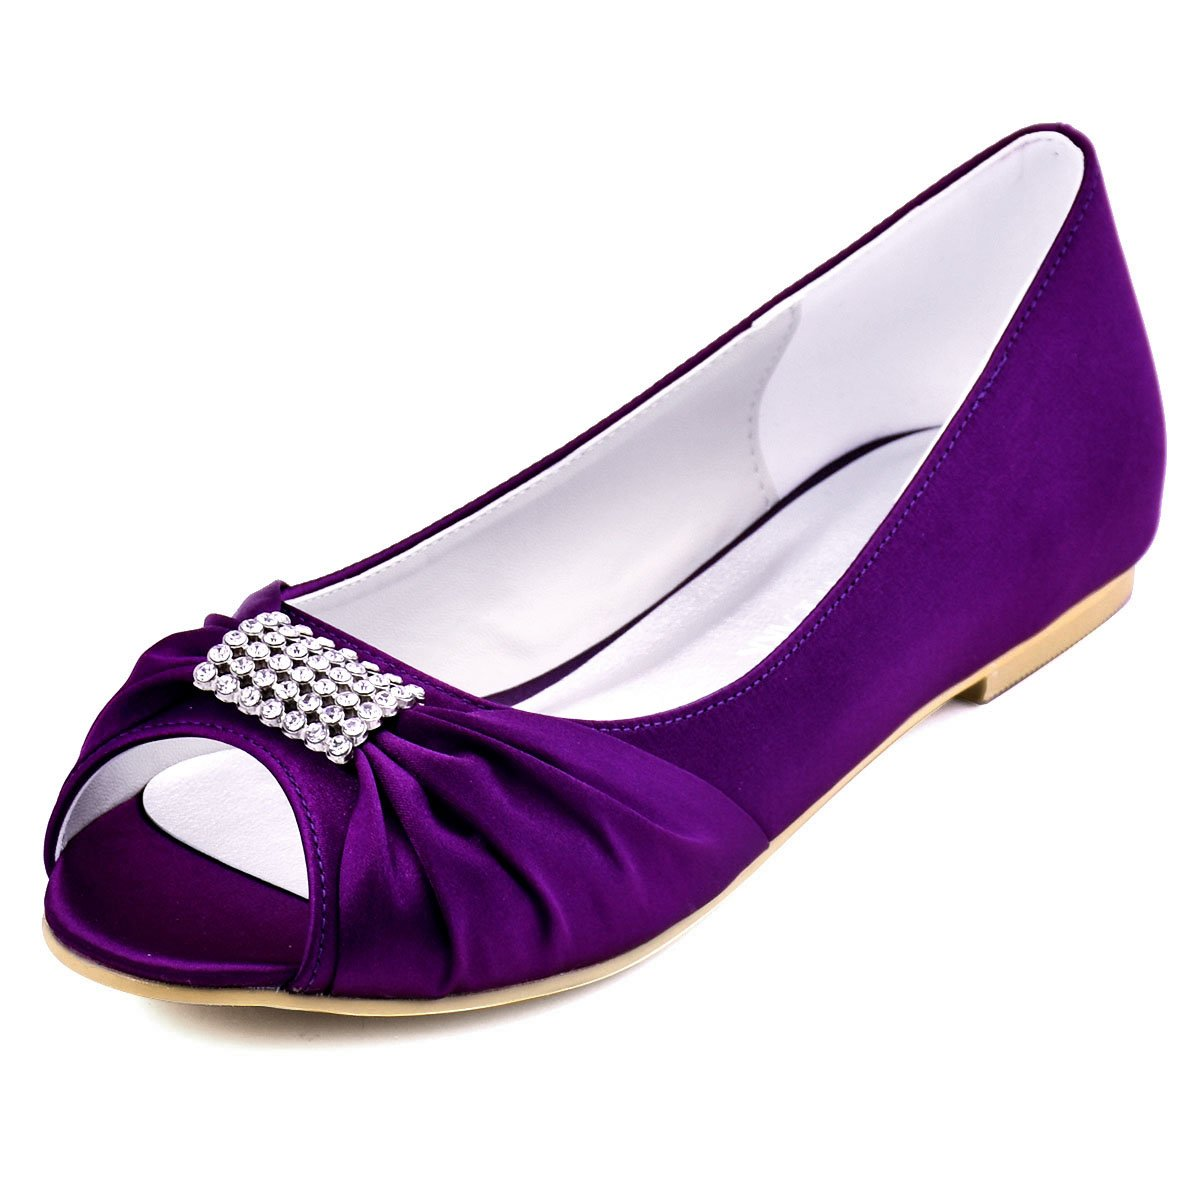 ElegantPark EP2053 Women Peep Toe Rhinestones Comfort Flats Pleated Satin Wedding Bridal Shoes Purple US 9